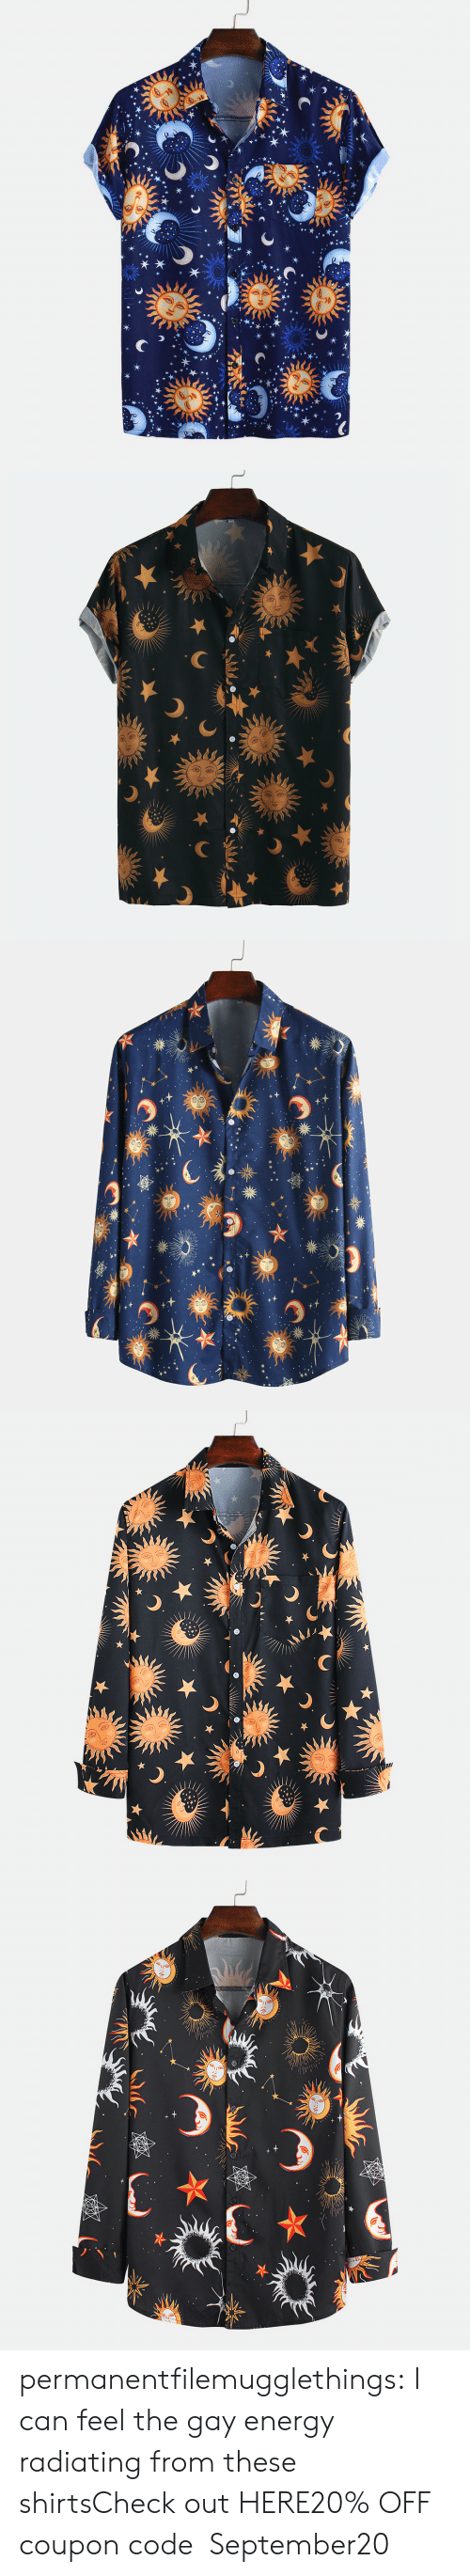 Energy, Tumblr, and Blog: permanentfilemugglethings:  I can feel the gay energy radiating from these shirtsCheck out HERE20% OFF coupon code:September20